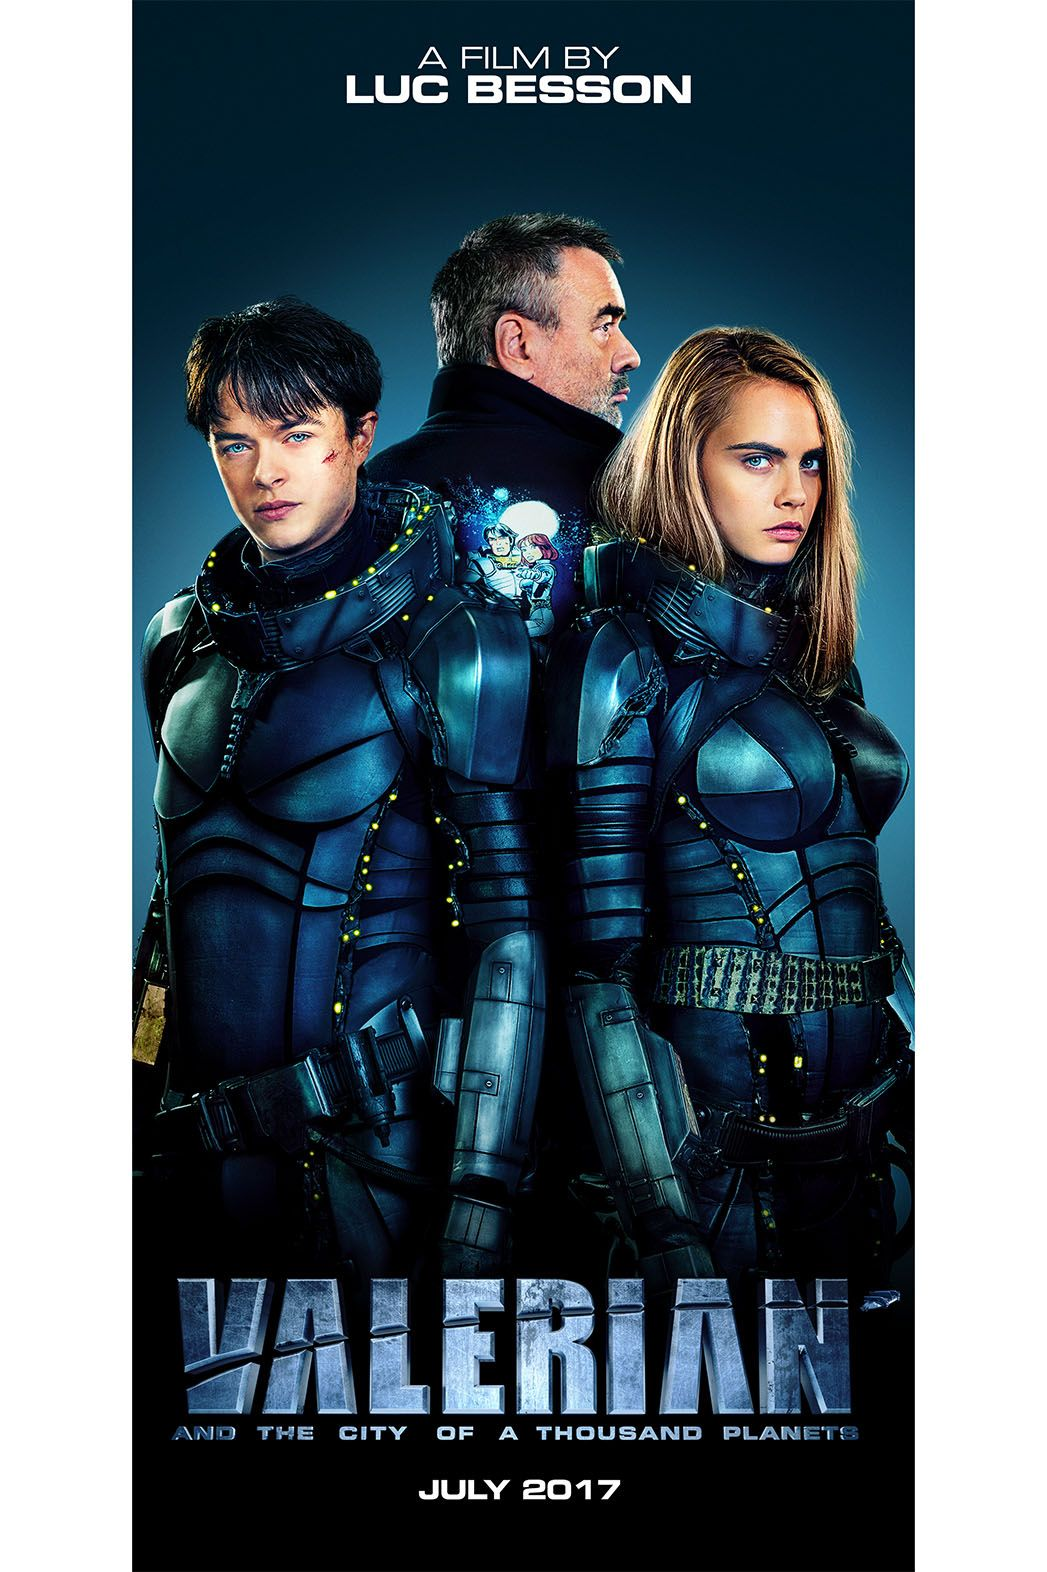 Valerian Mobile And Web Games To Be Created By Spil Games The Strategy Game Will Explore The Back Story To Luc Bess Planet Movie Film Valerian Sci Fi Movies